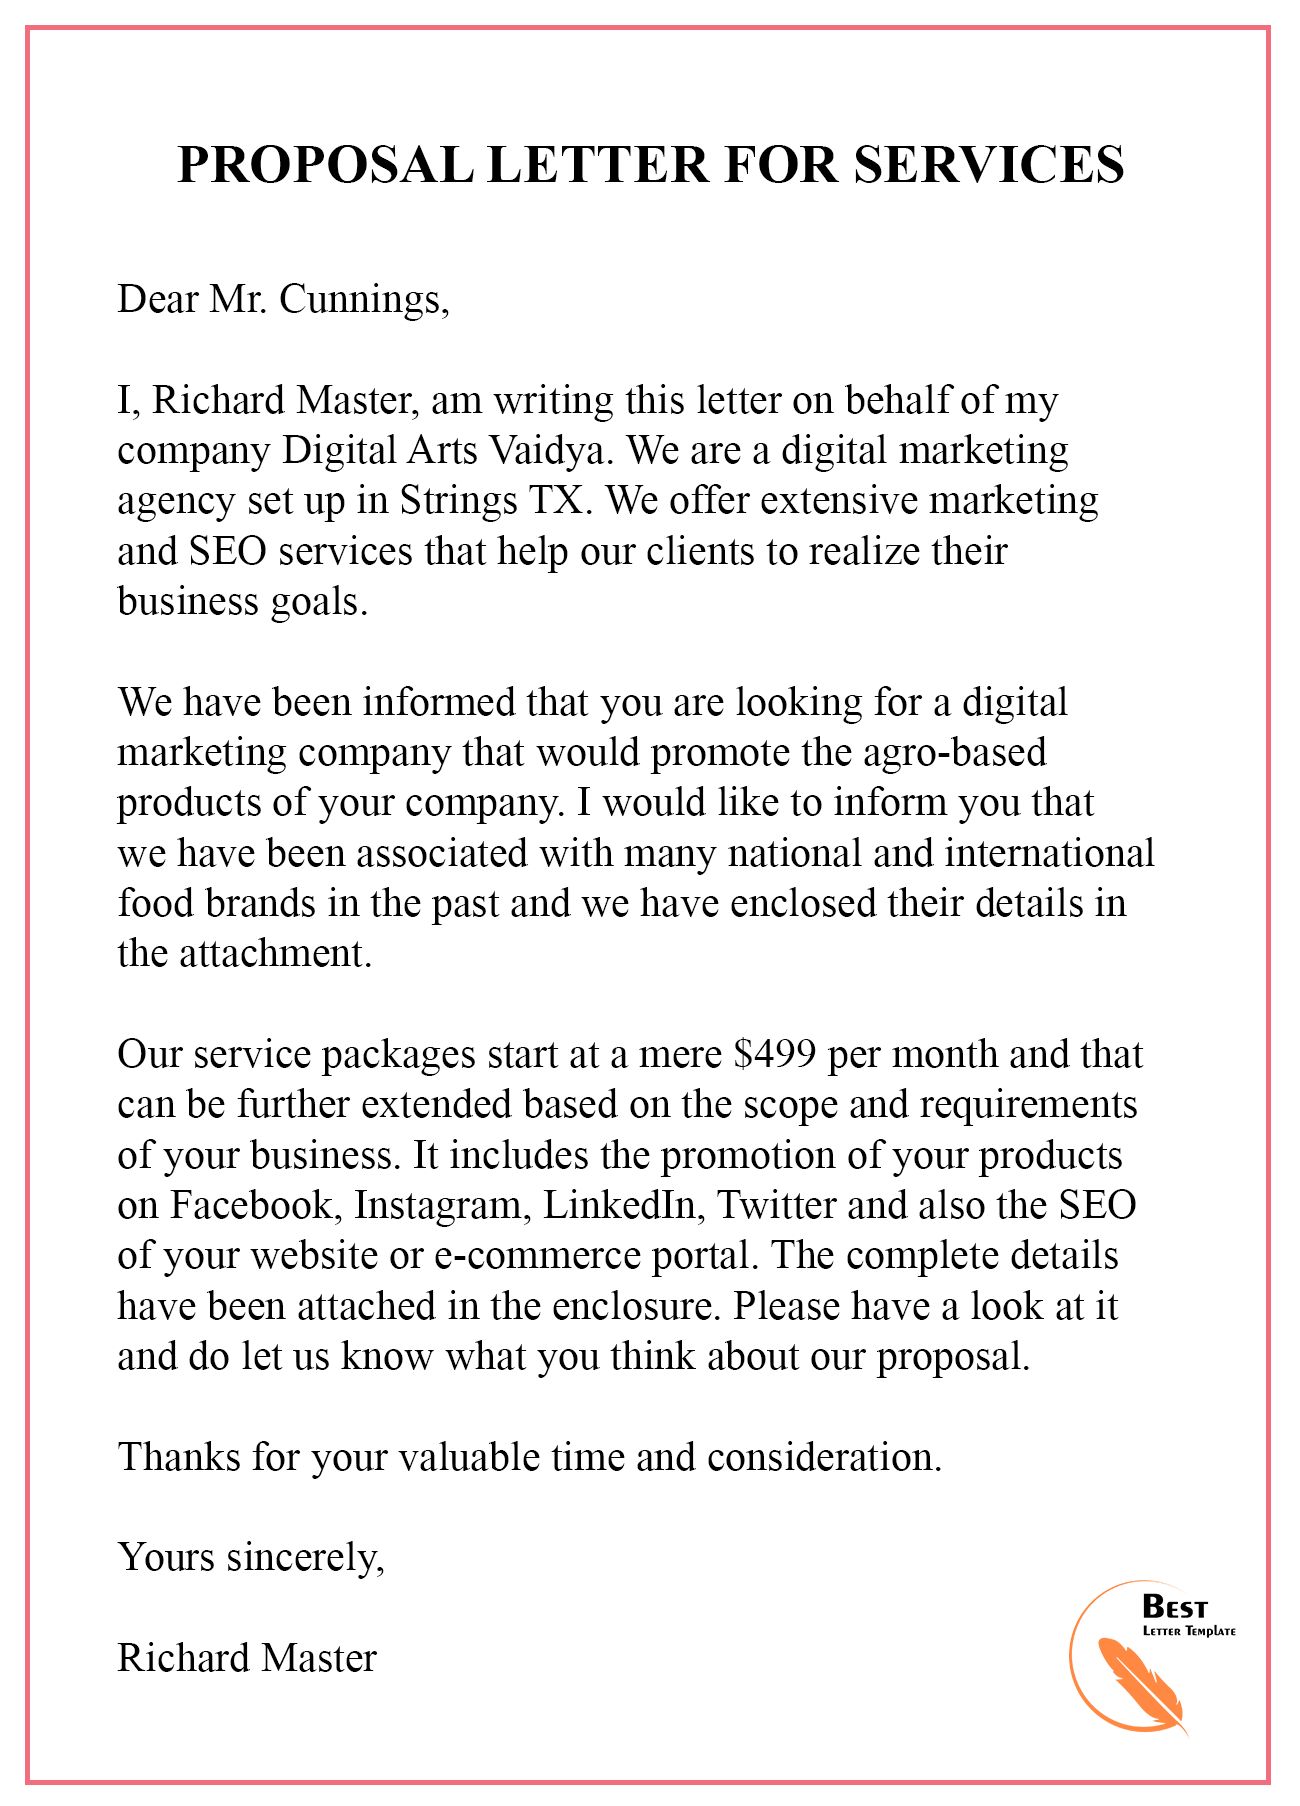 Proposal Letter Sample For Services from bestlettertemplate.com